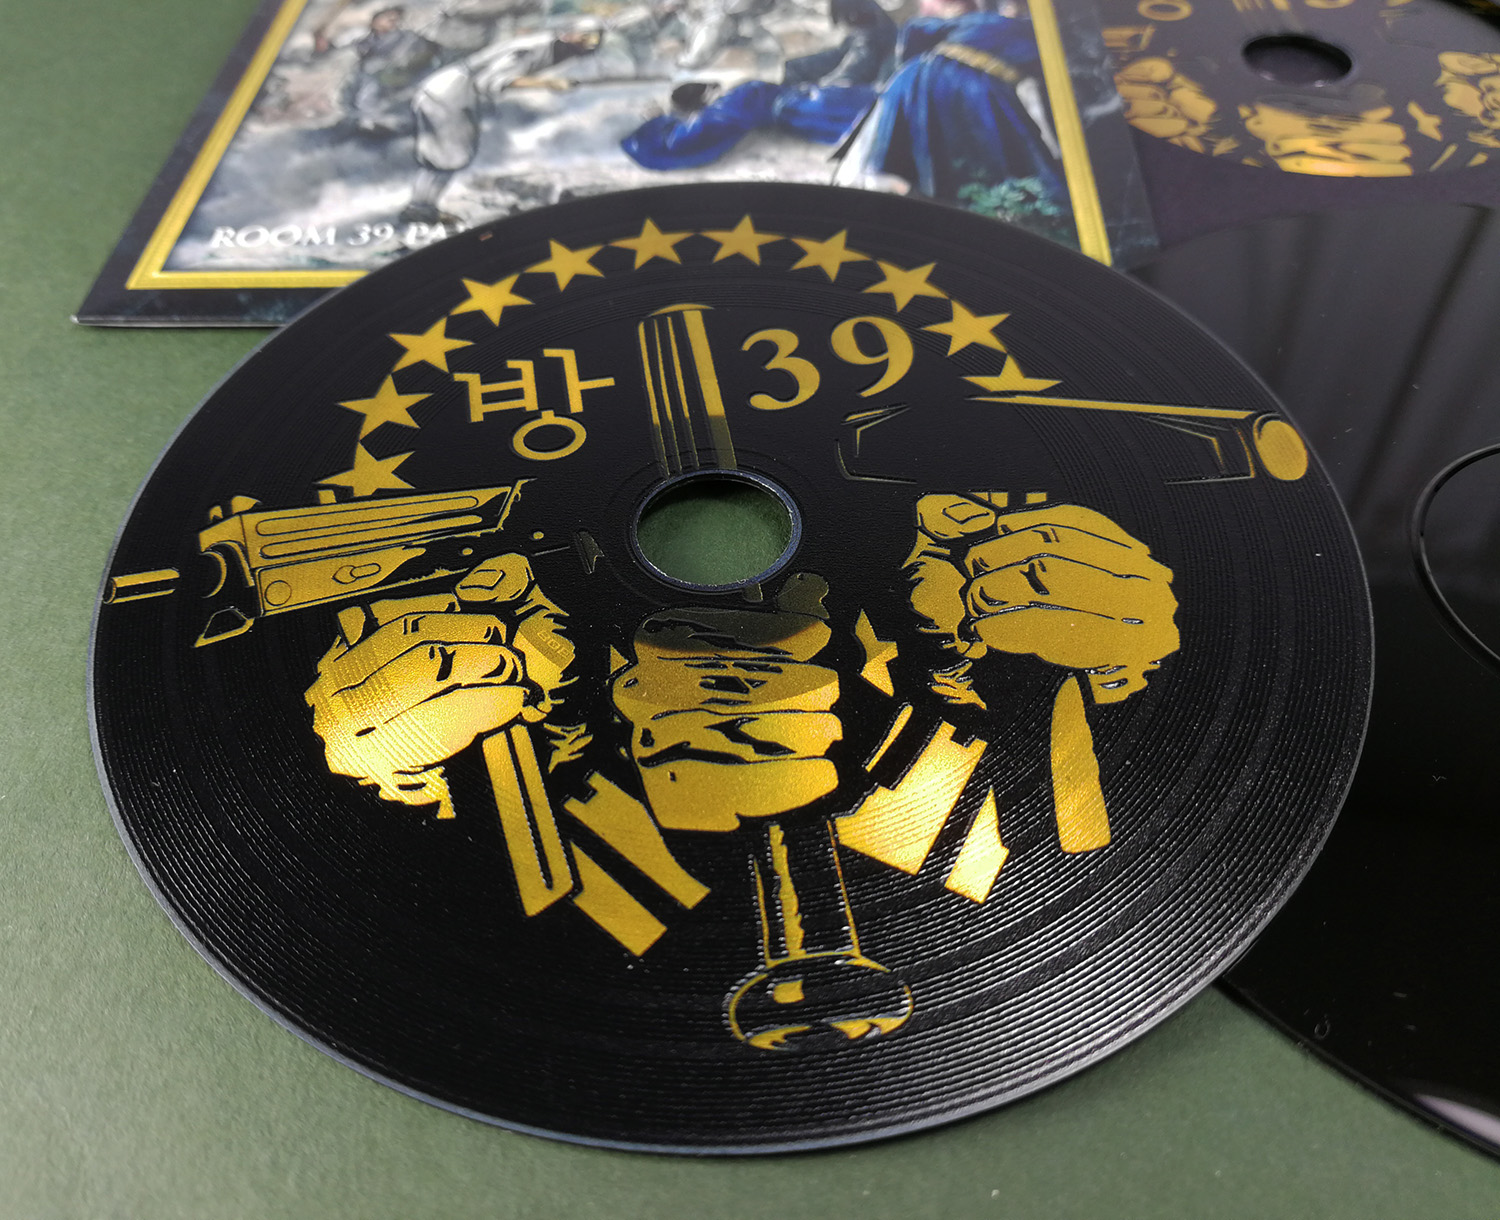 Custom printed full coverage black vinyl CDs with a metallic gold print in premium vinyl wallets